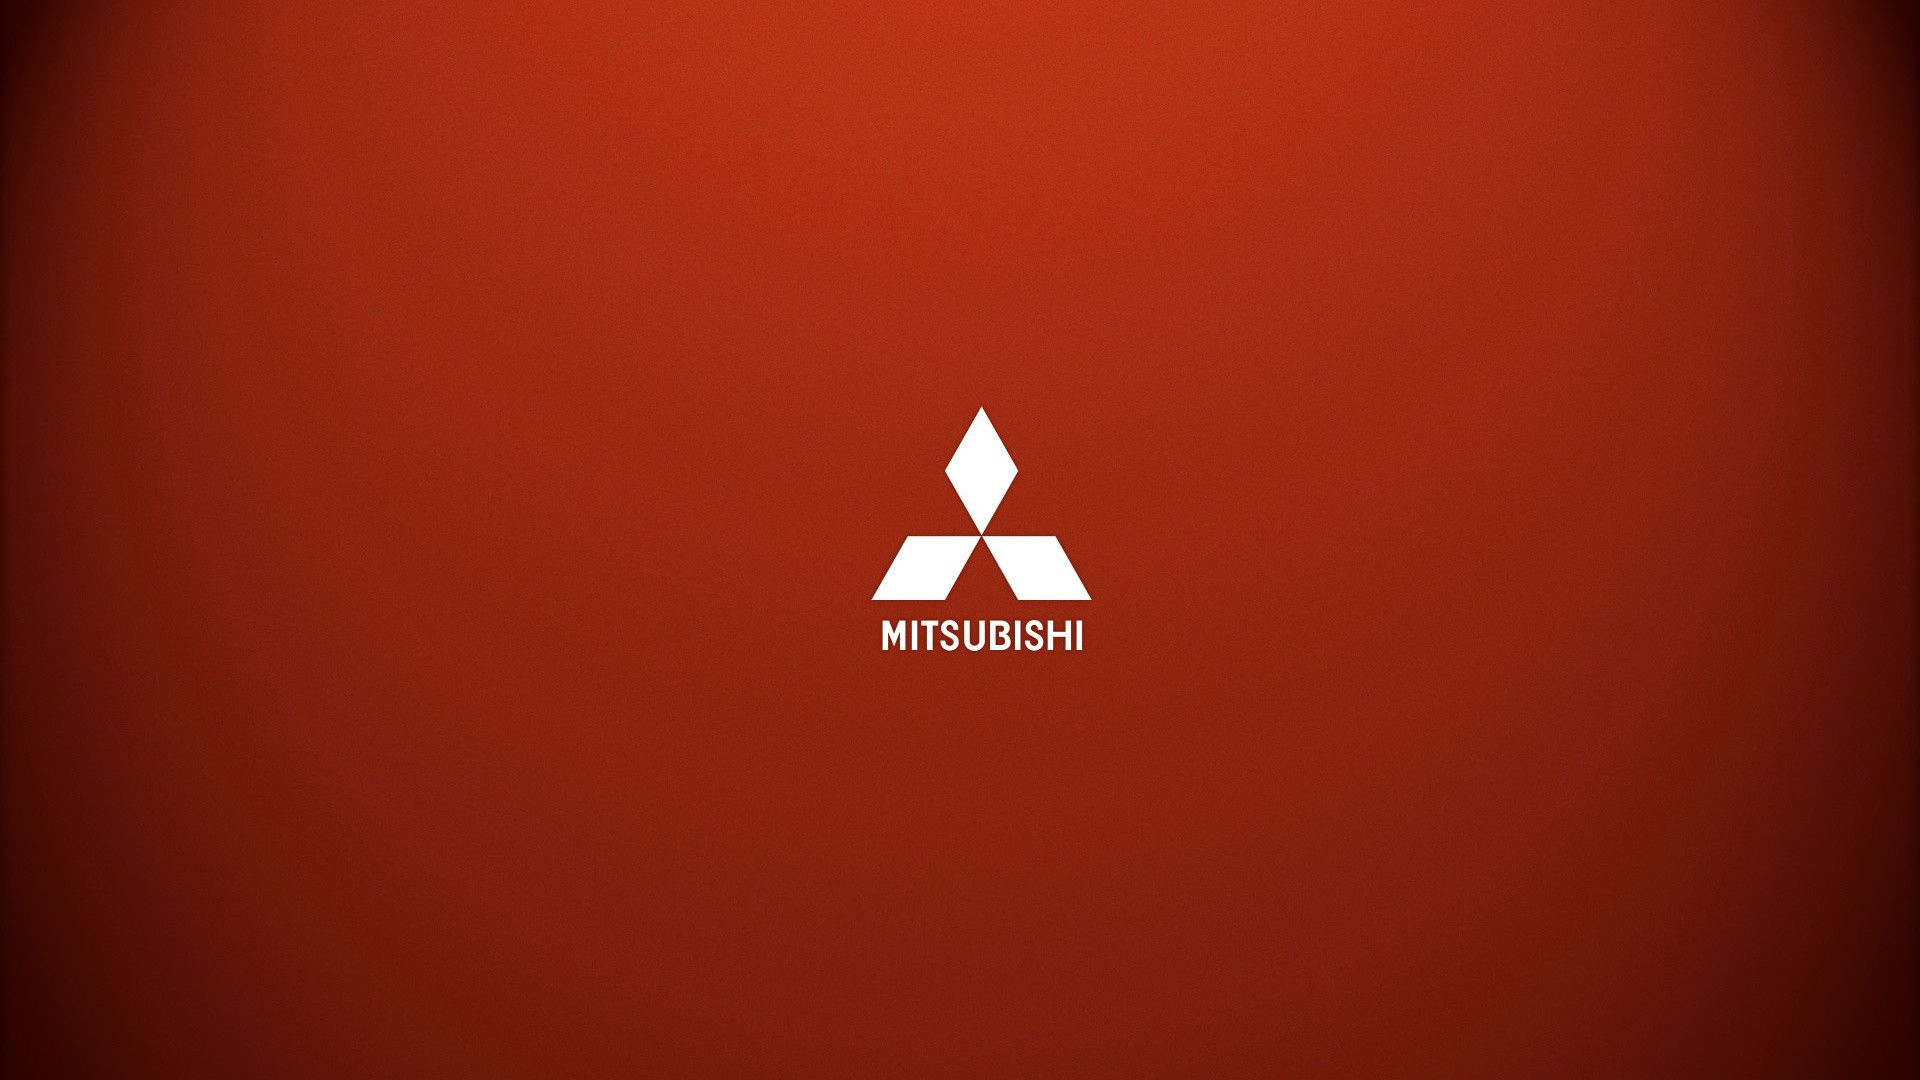 Mitsubishi Logo HD Wallpaper Mitsubishi, Car brands